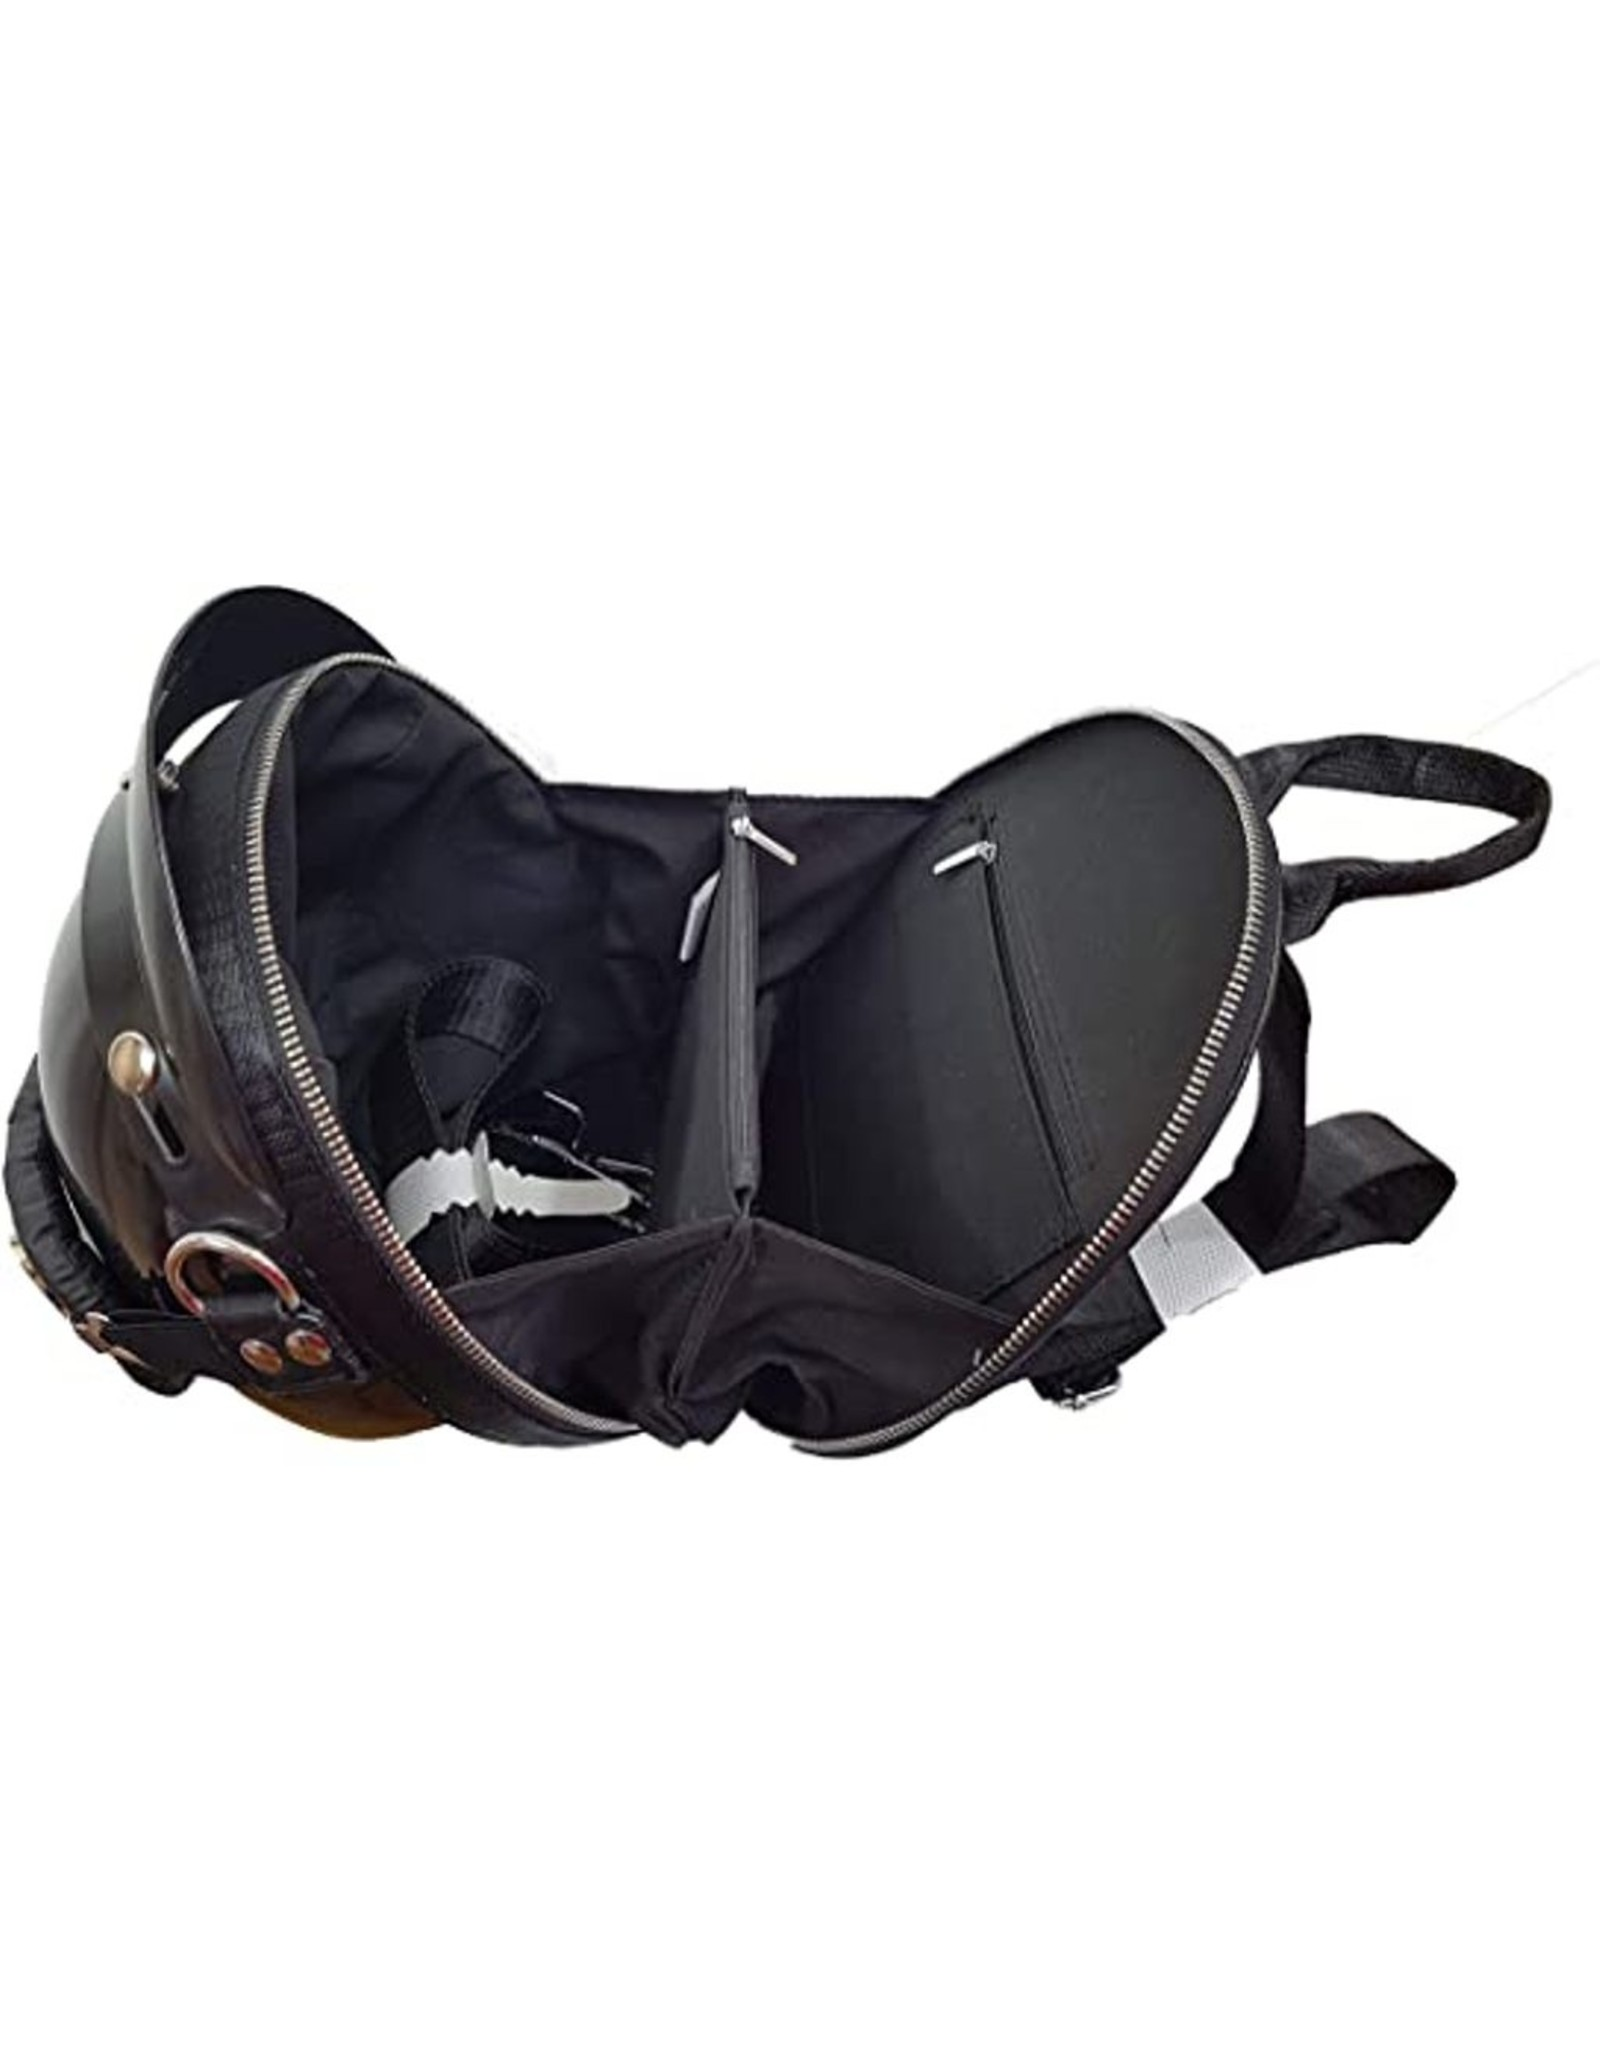 Magic Bags Fantasy tassen en portemonnees - Motorhelm rugtas-schoudertas